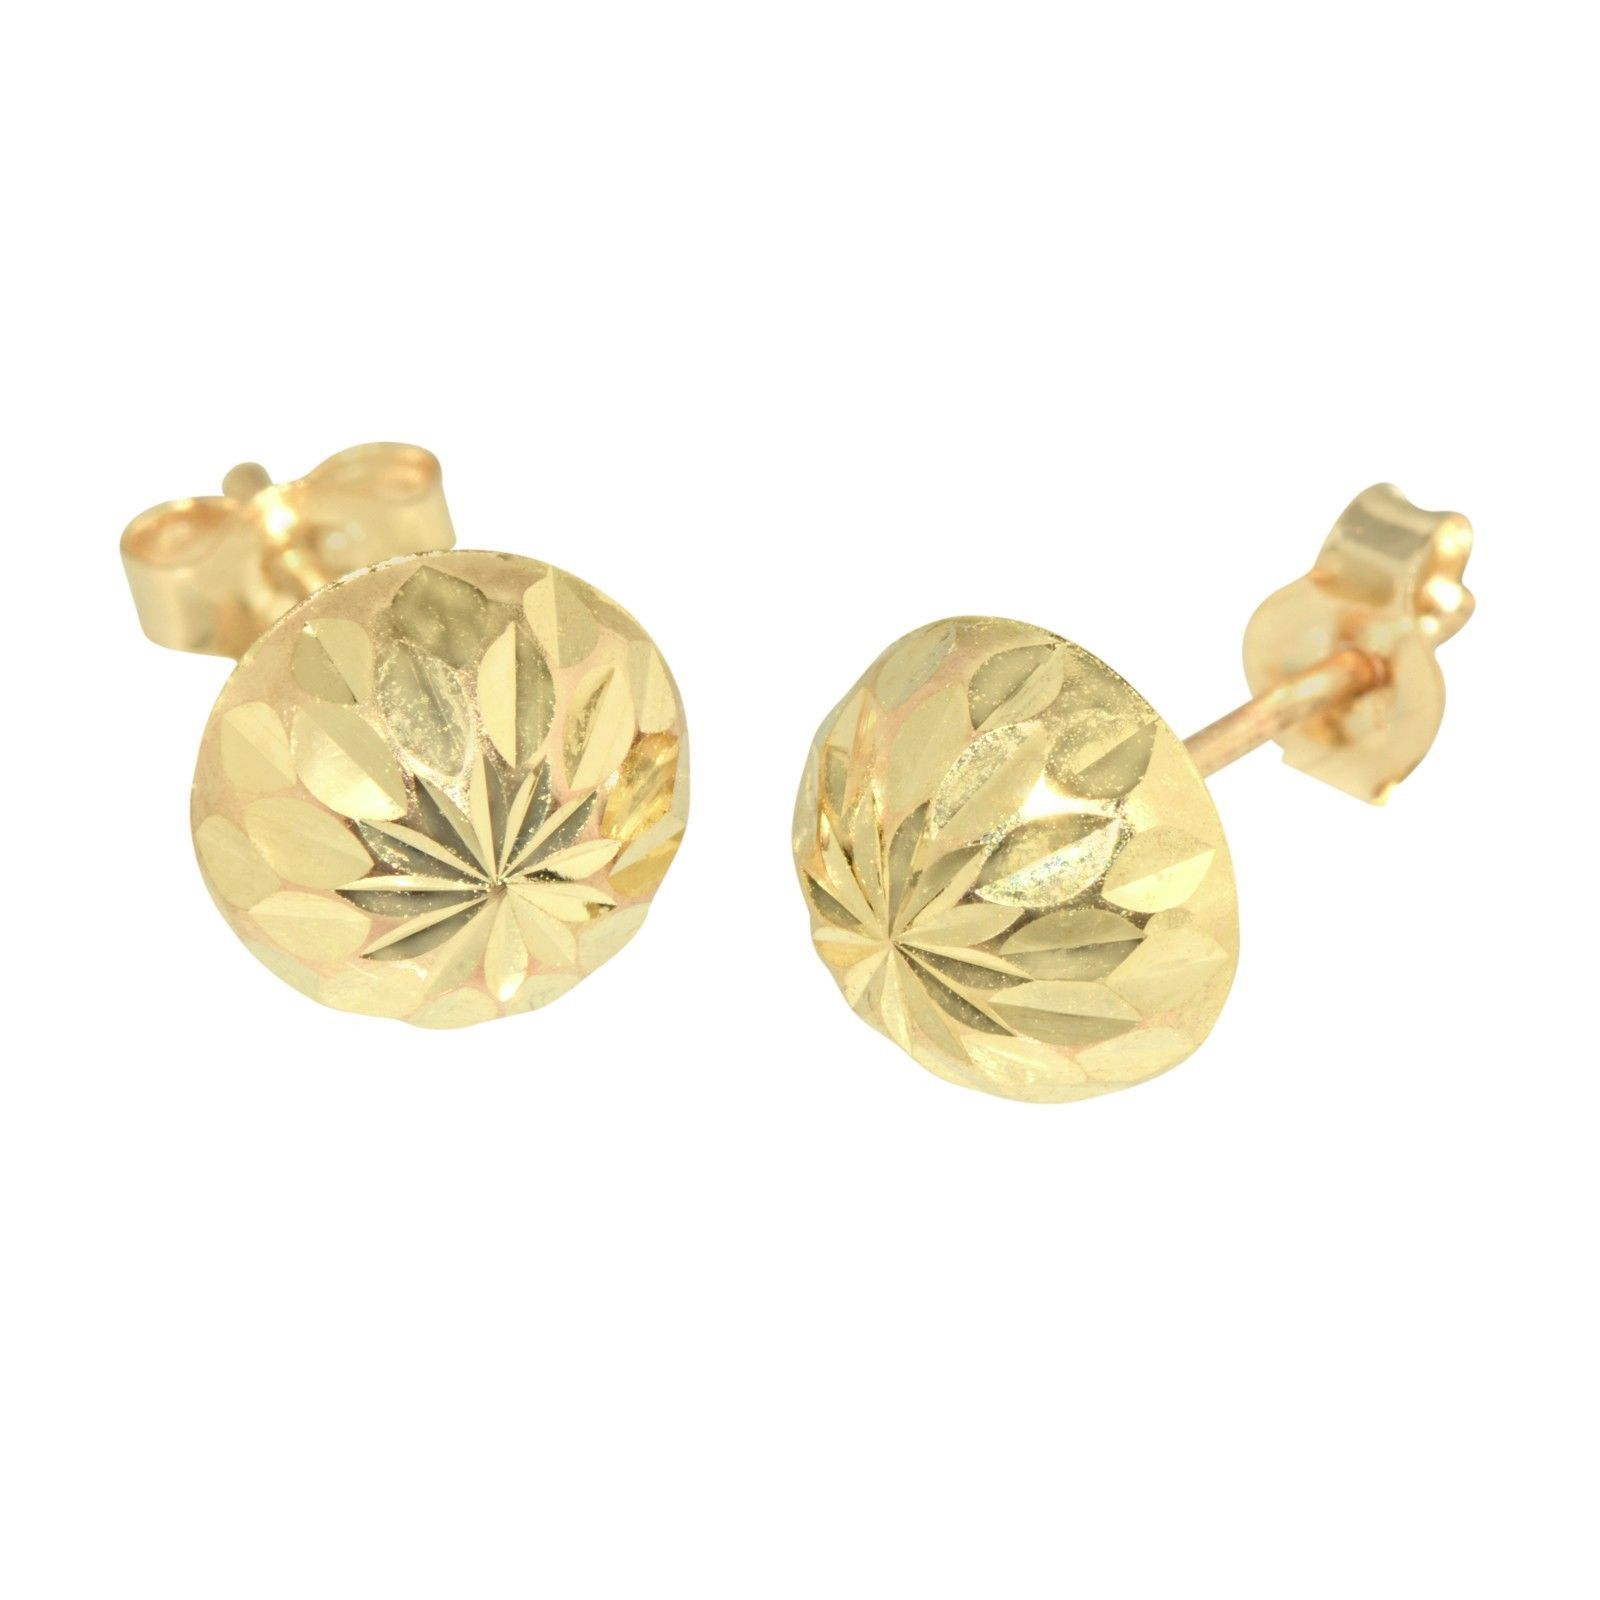 14k Two-Tone Gold 6mm Half Huggies Earrings With Push Back, 13mm X 10mm